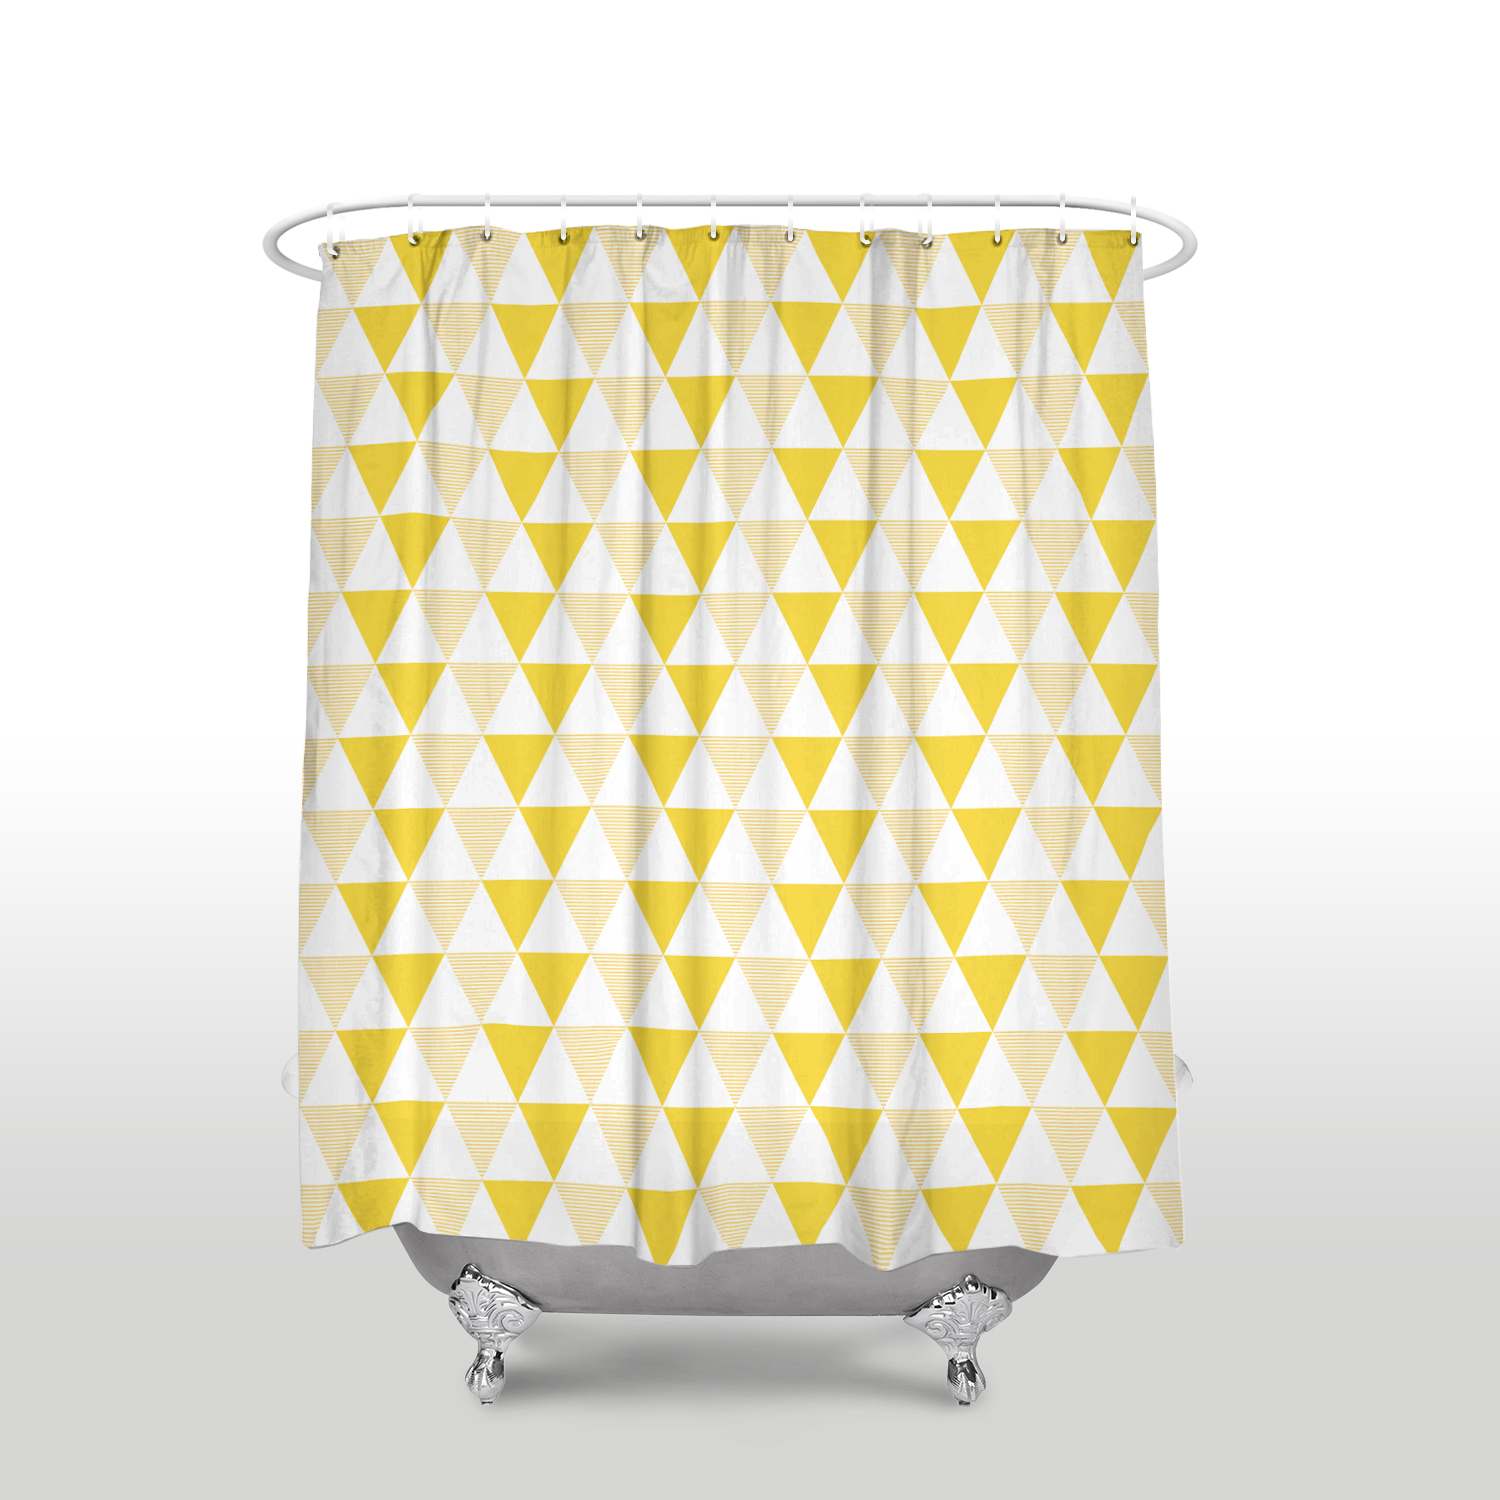 Us 16 97 45 Off Waterproof Simple Triangles Geometry Printed Shower Curtain Polyester Fabric Yellow White Bathroom Curtains For Home Decorations In